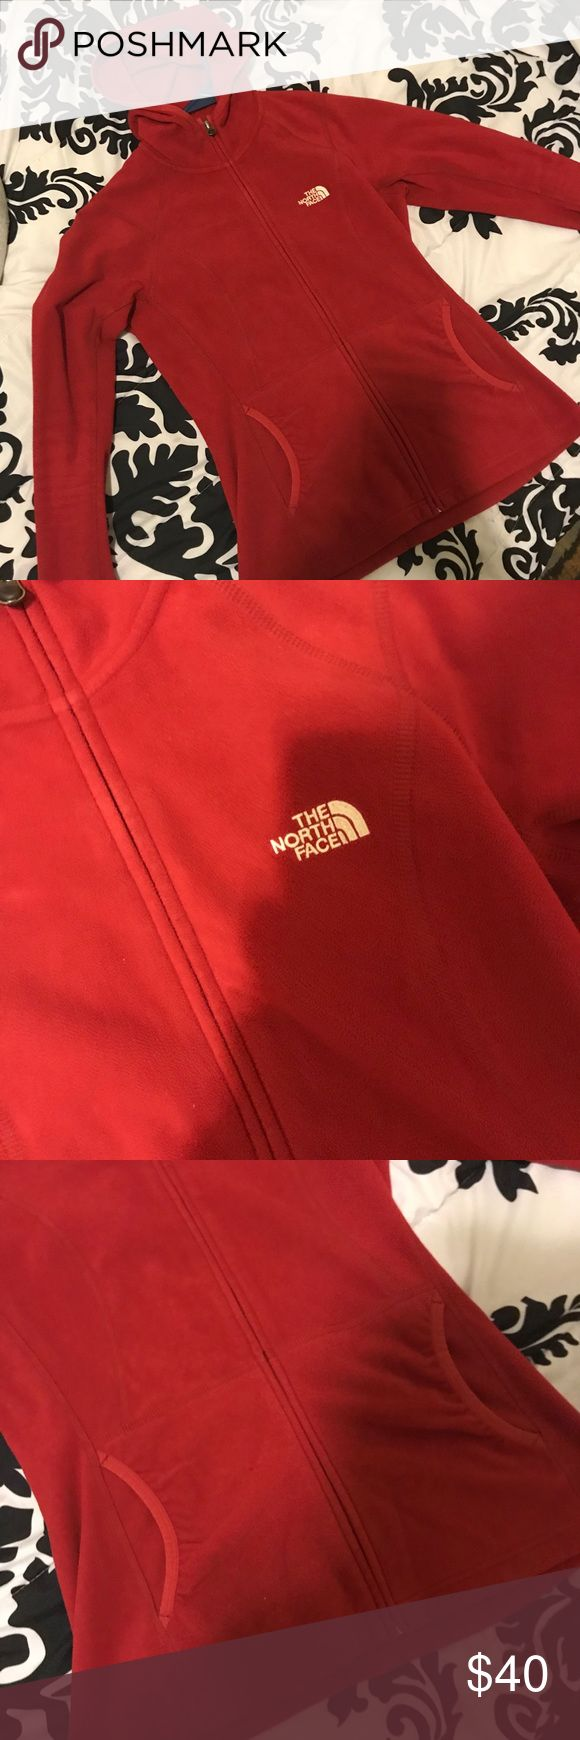 "Women's Red NorthFace Fleece Authentic Women's Red ""North Face"" Fleece. Great For Fall Days As A Fleece Or In The Winter Under A Parka. Comes With Thumbholes For Texters :) Women's Shape So It Looks Slim In The Waist And Fans Out At The Hip. GREAT CONDITION!!! North Face Jackets & Coats"